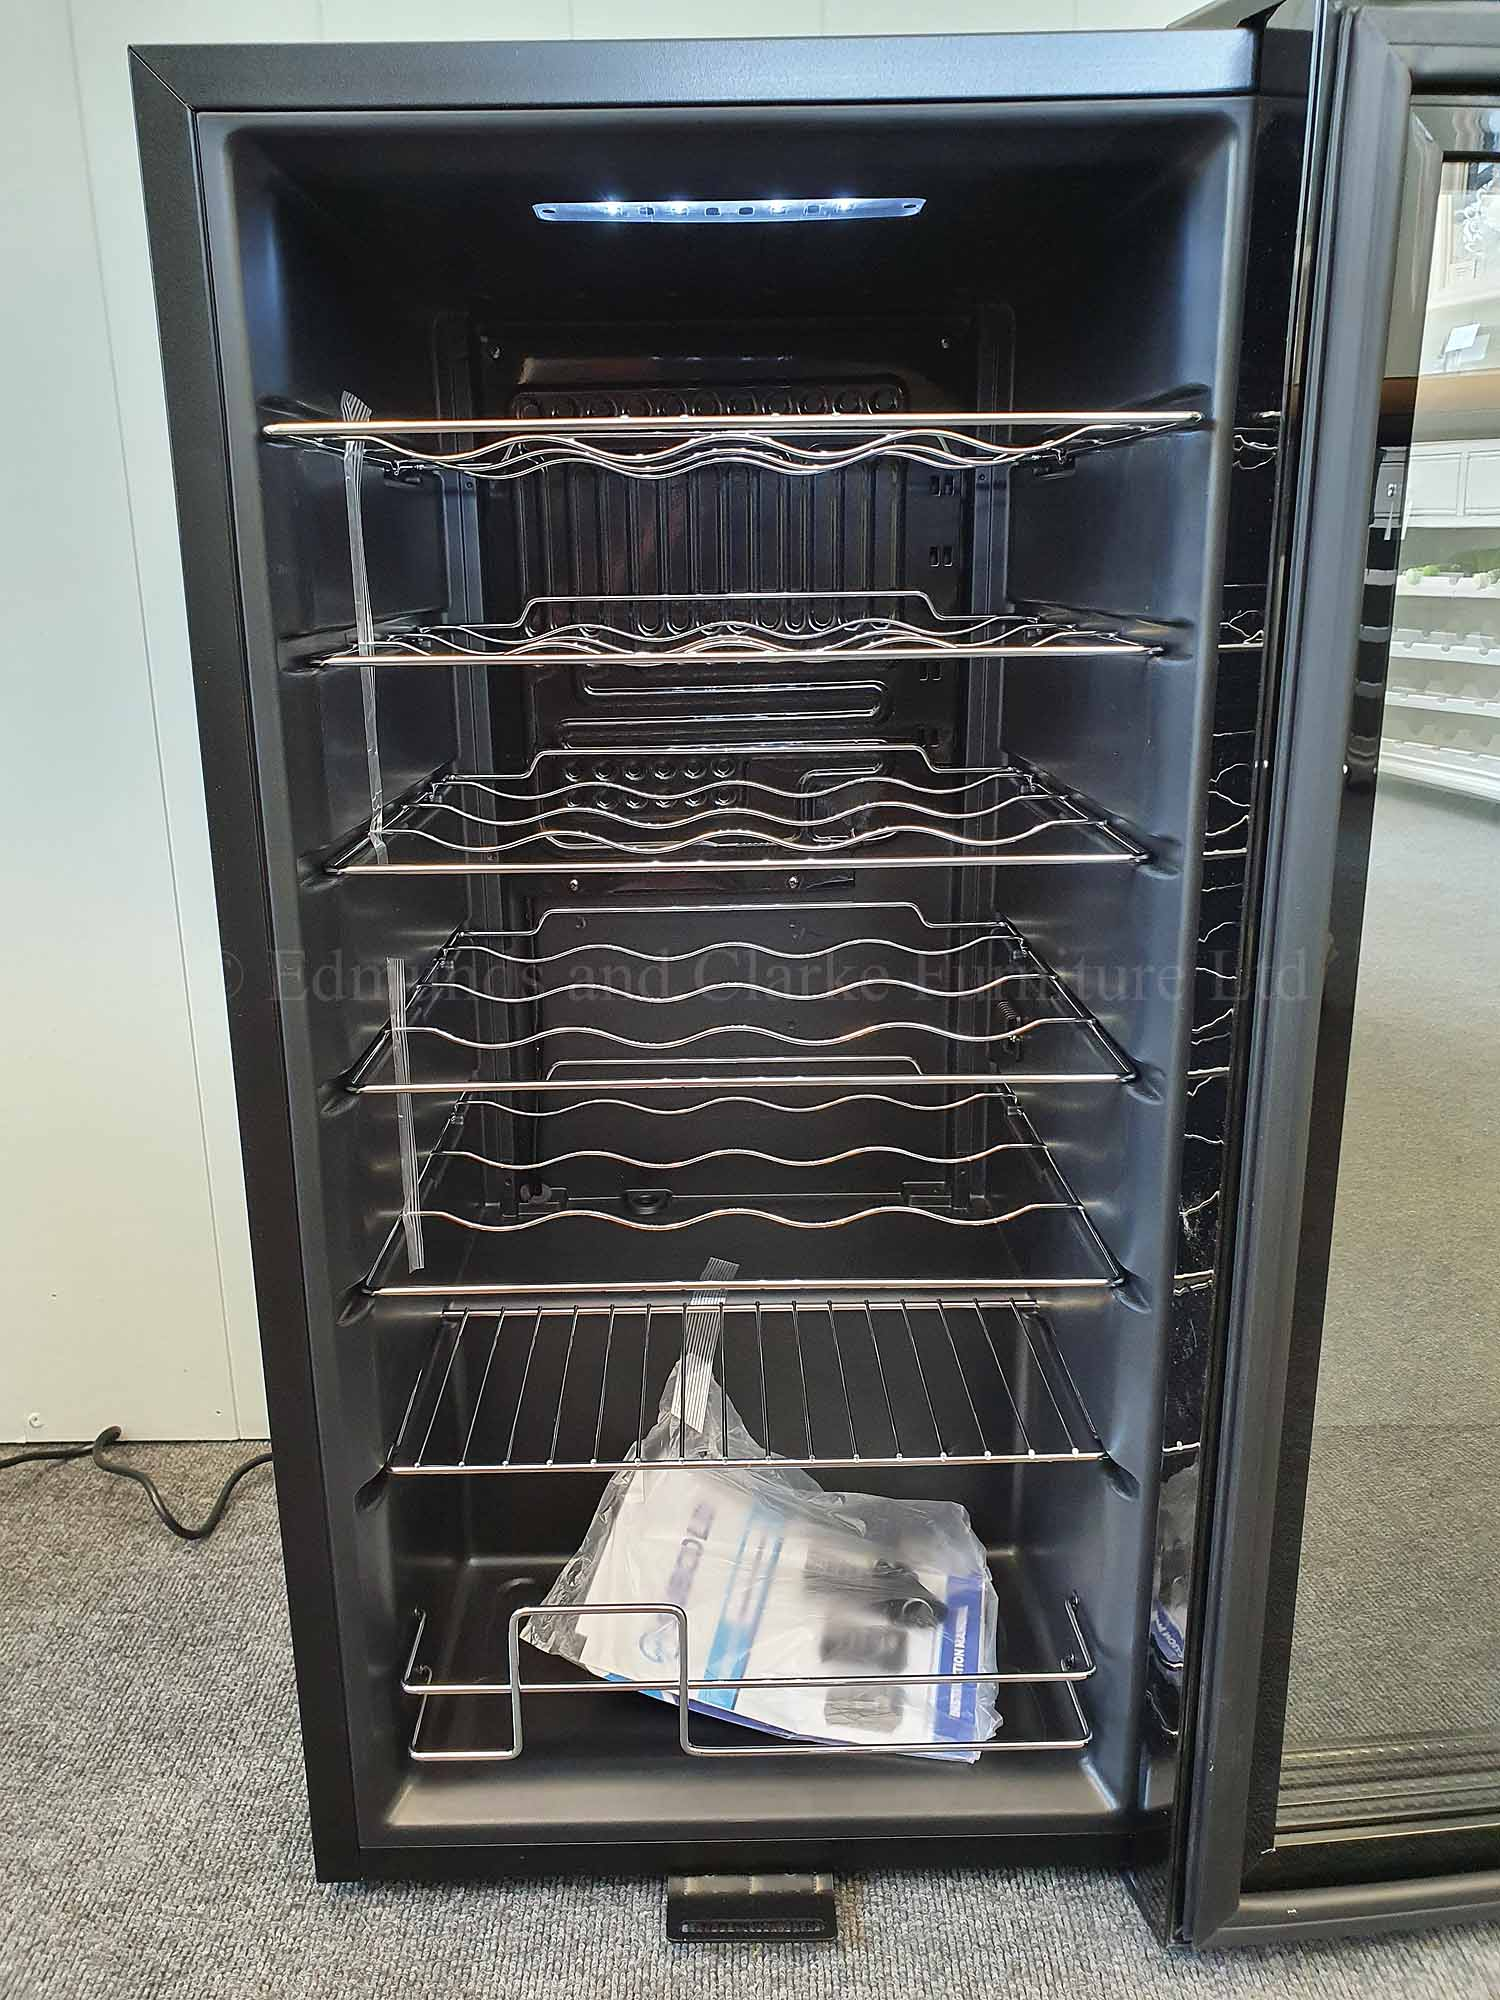 subcold wine chiller used for drinks sideboard